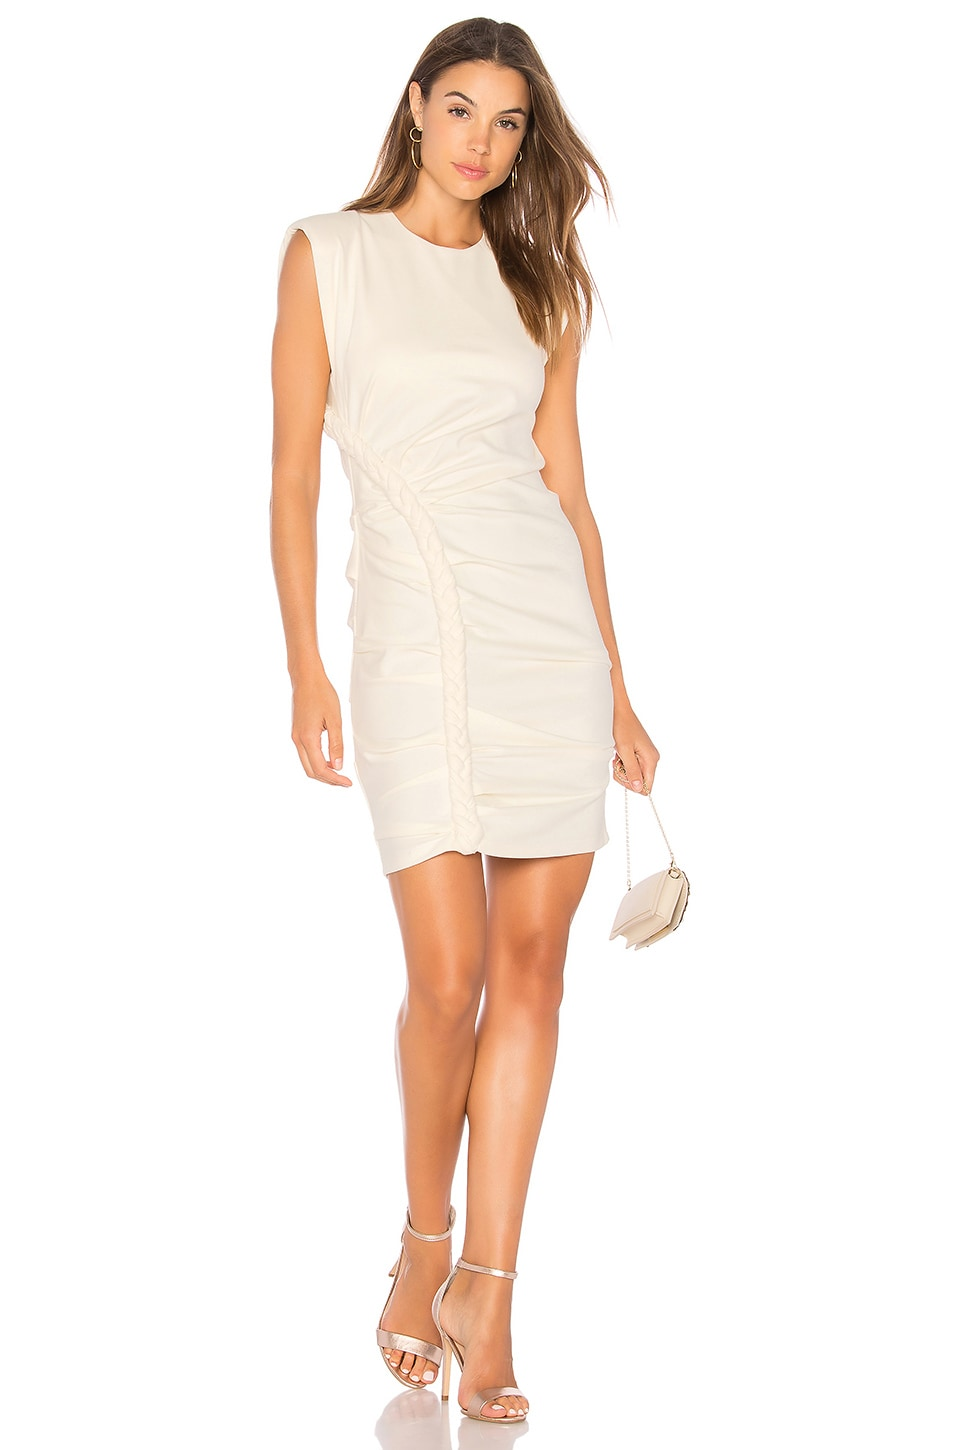 Ronny Kobo Adena Mini Dress in Ivory